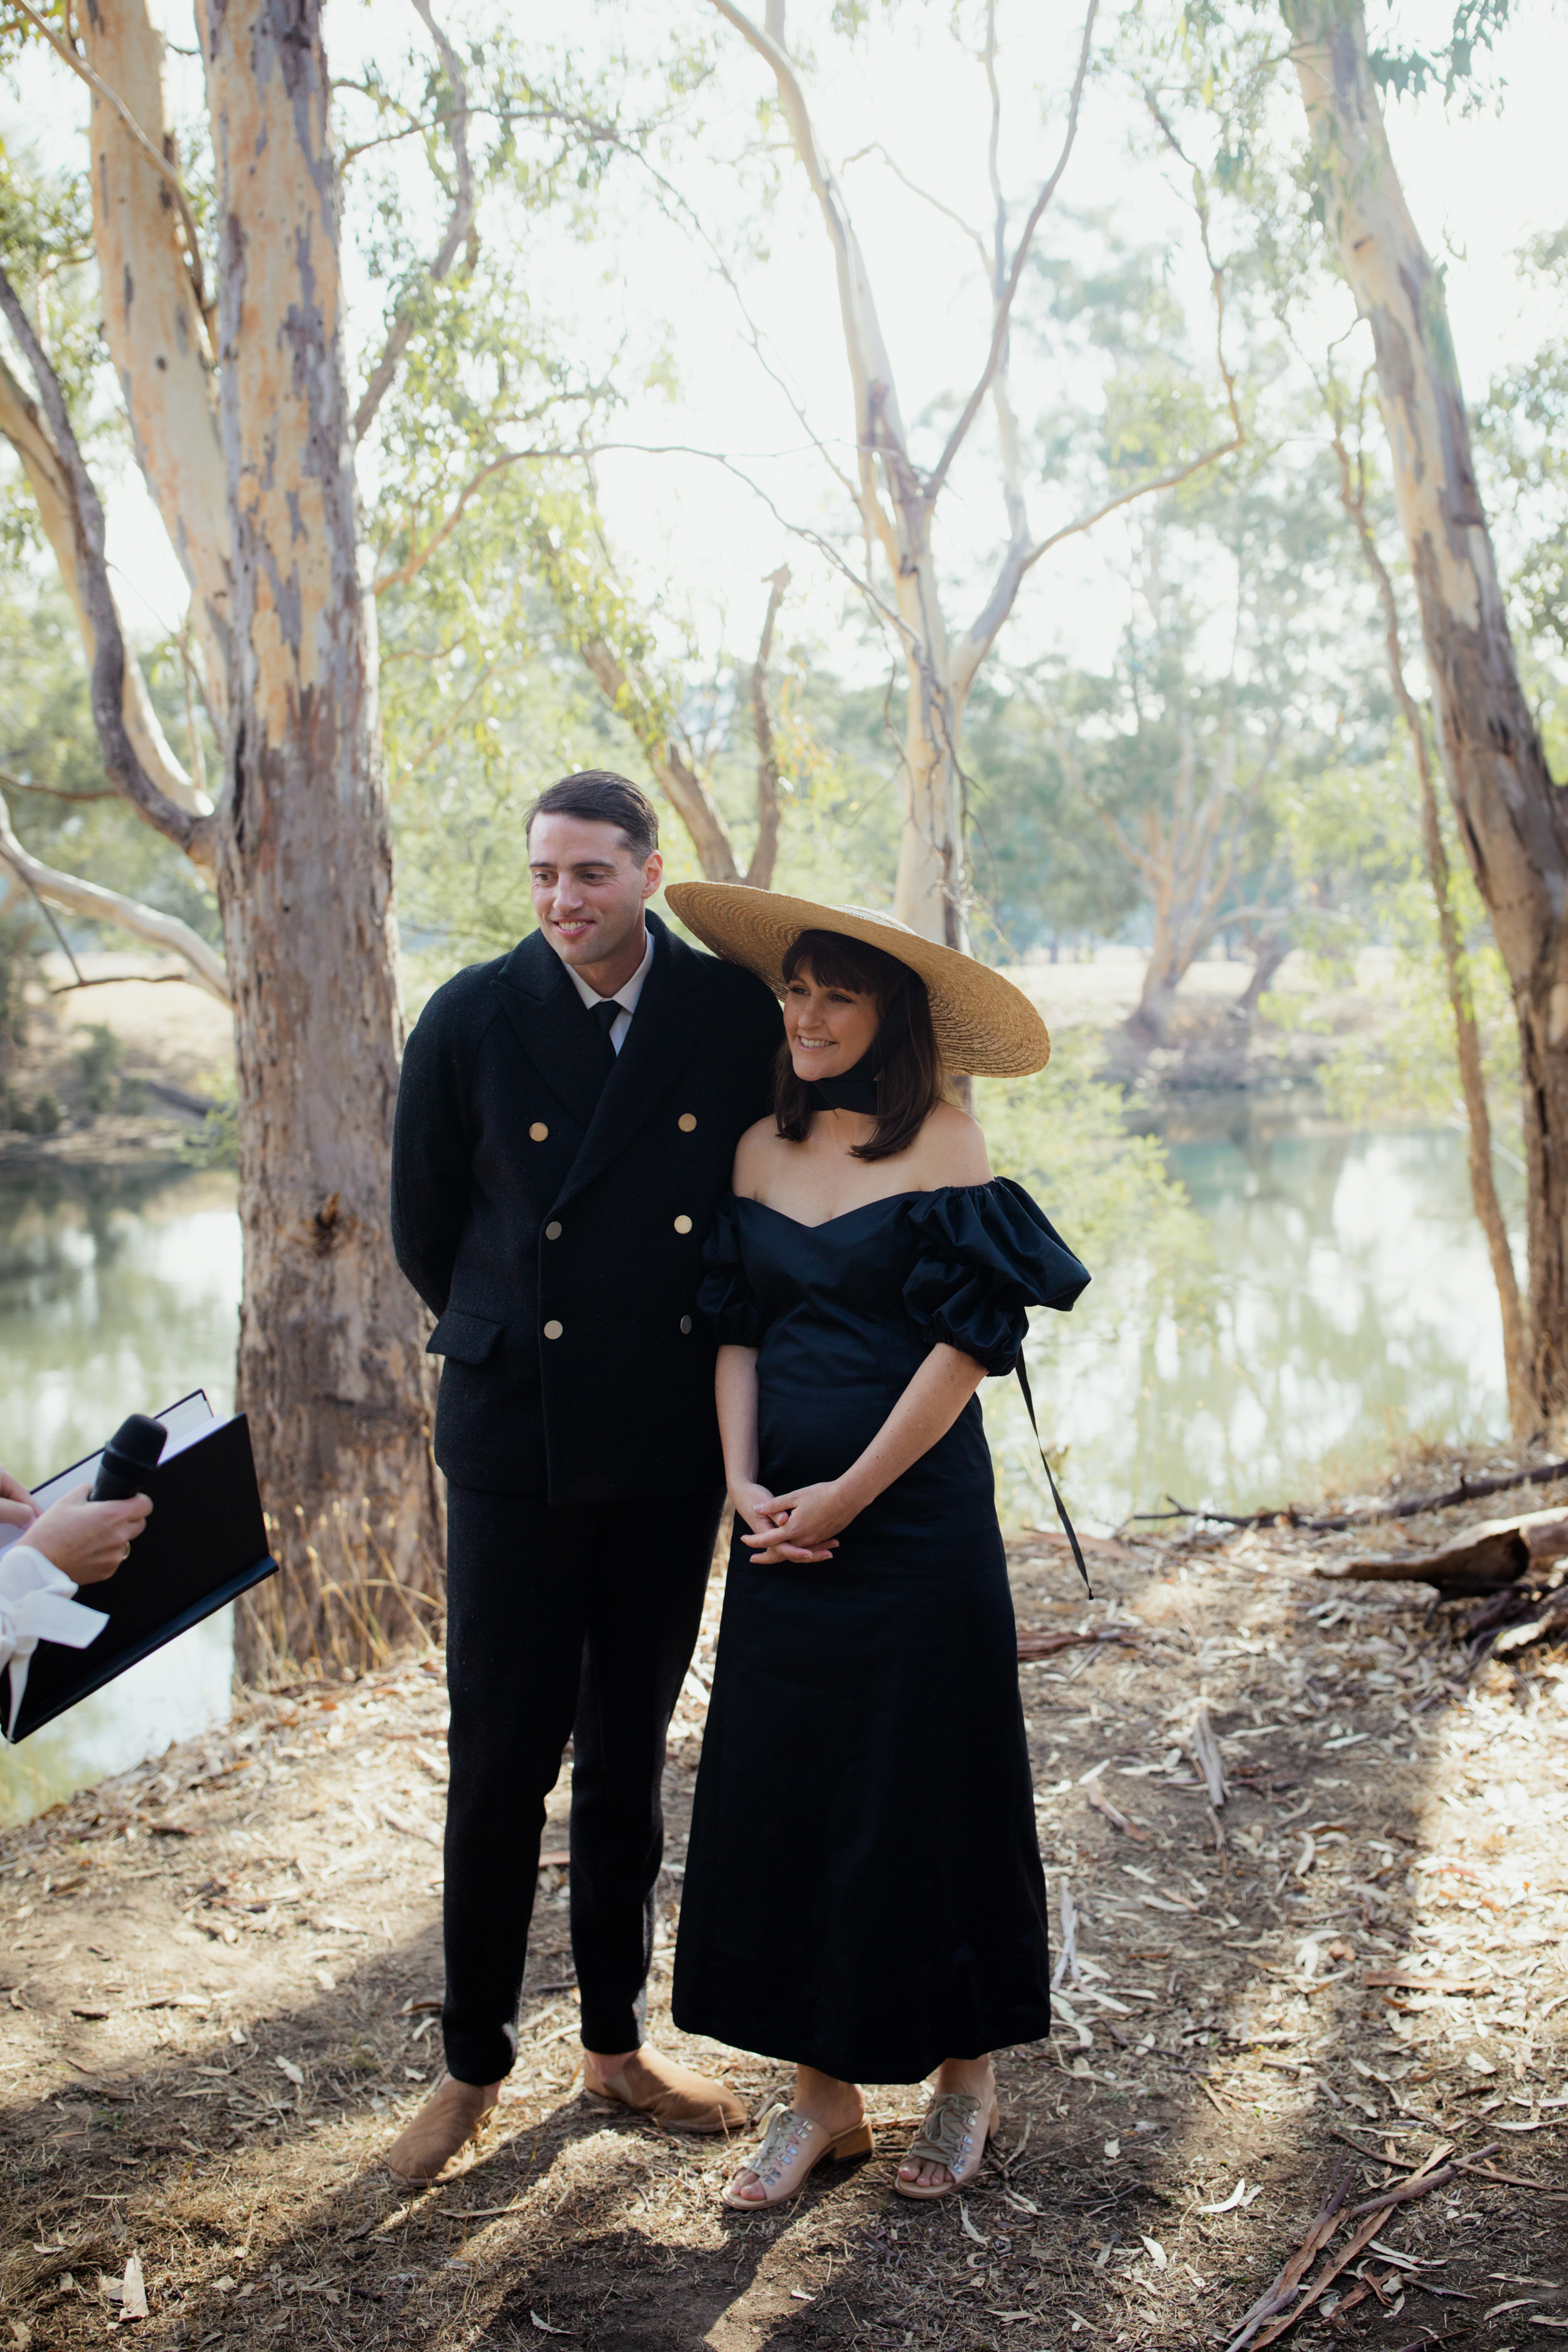 I-Got-You-Babe-Weddings-Claire-Dave-Trawol-VIC-Country-Property-Wedding102.JPG